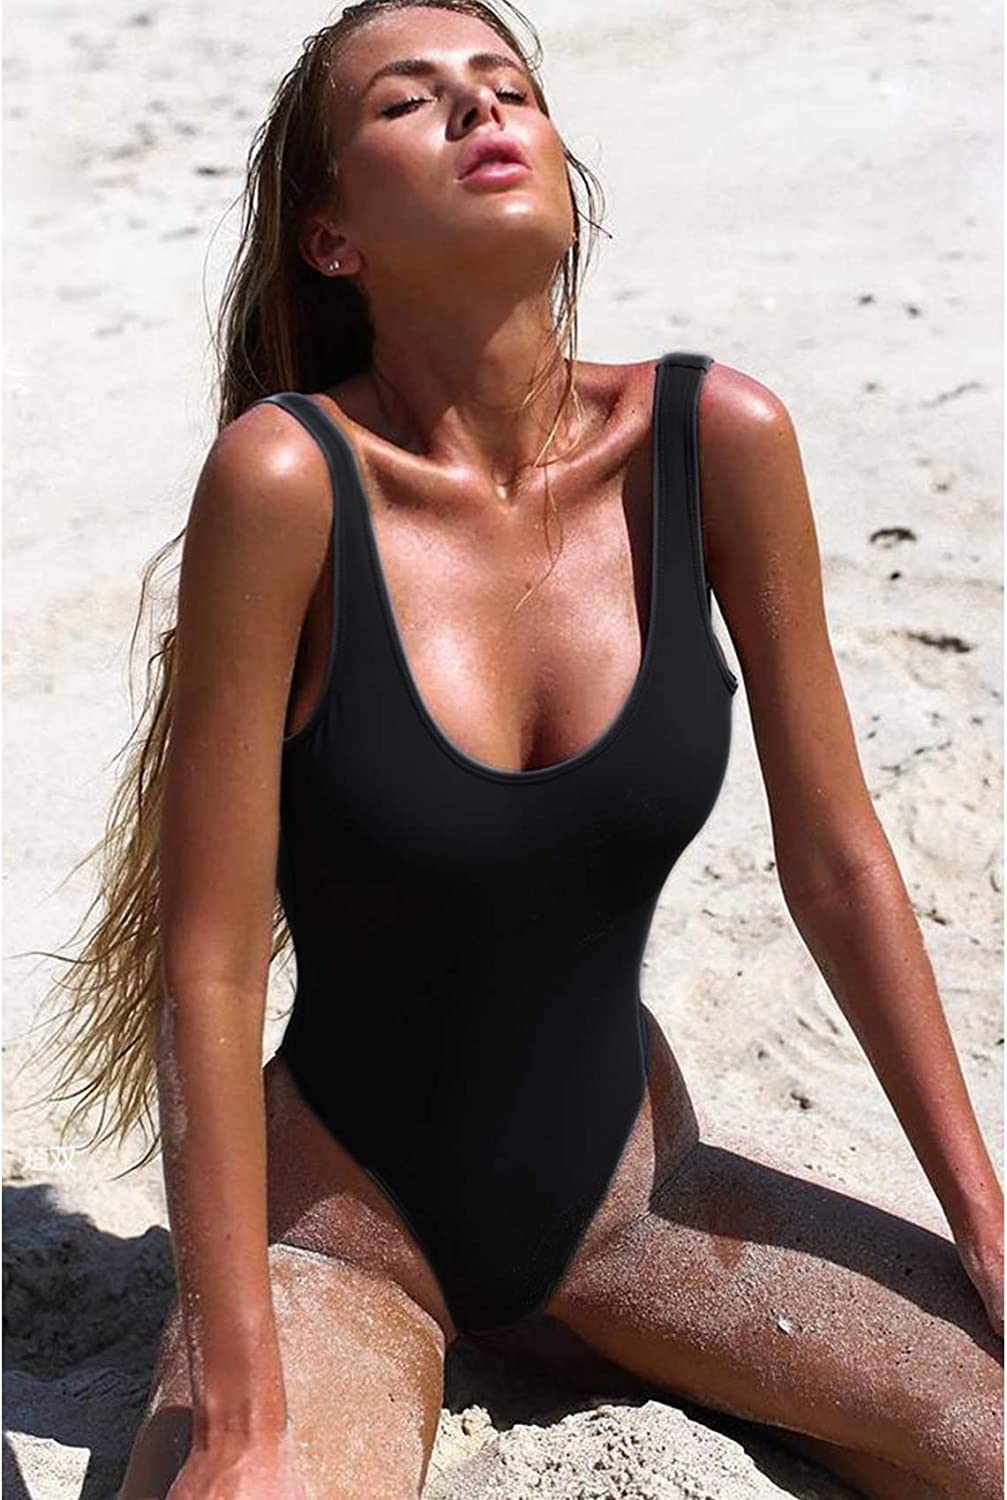 COLO Basic One Piece Monokini Full Coverage Bathing Suits for Women Padded Solid Color Swimsuits Backless Deep-U Neck